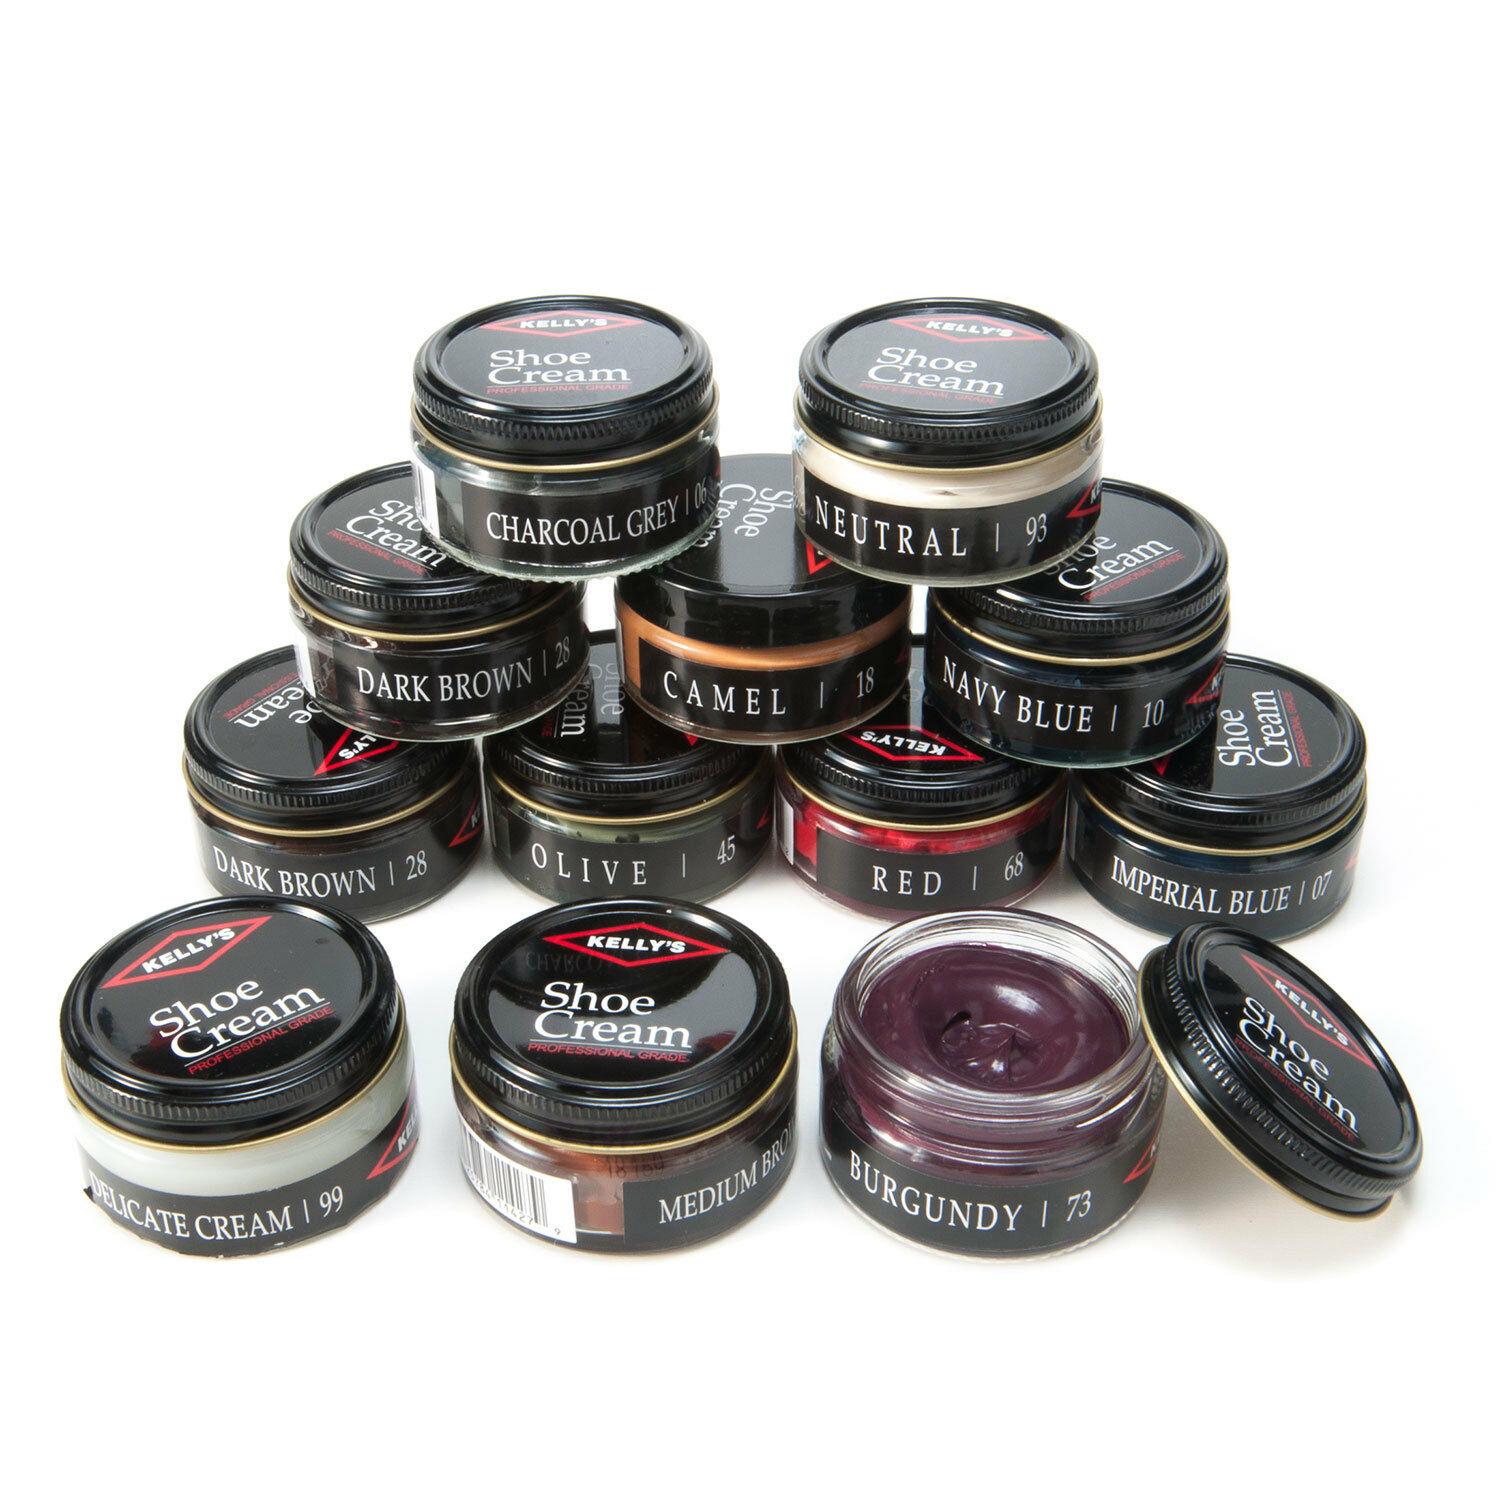 Kelly's Shoe & Boot Leather Cream Polish By Fiebing's ALL COLORS Clothing & Shoe Care